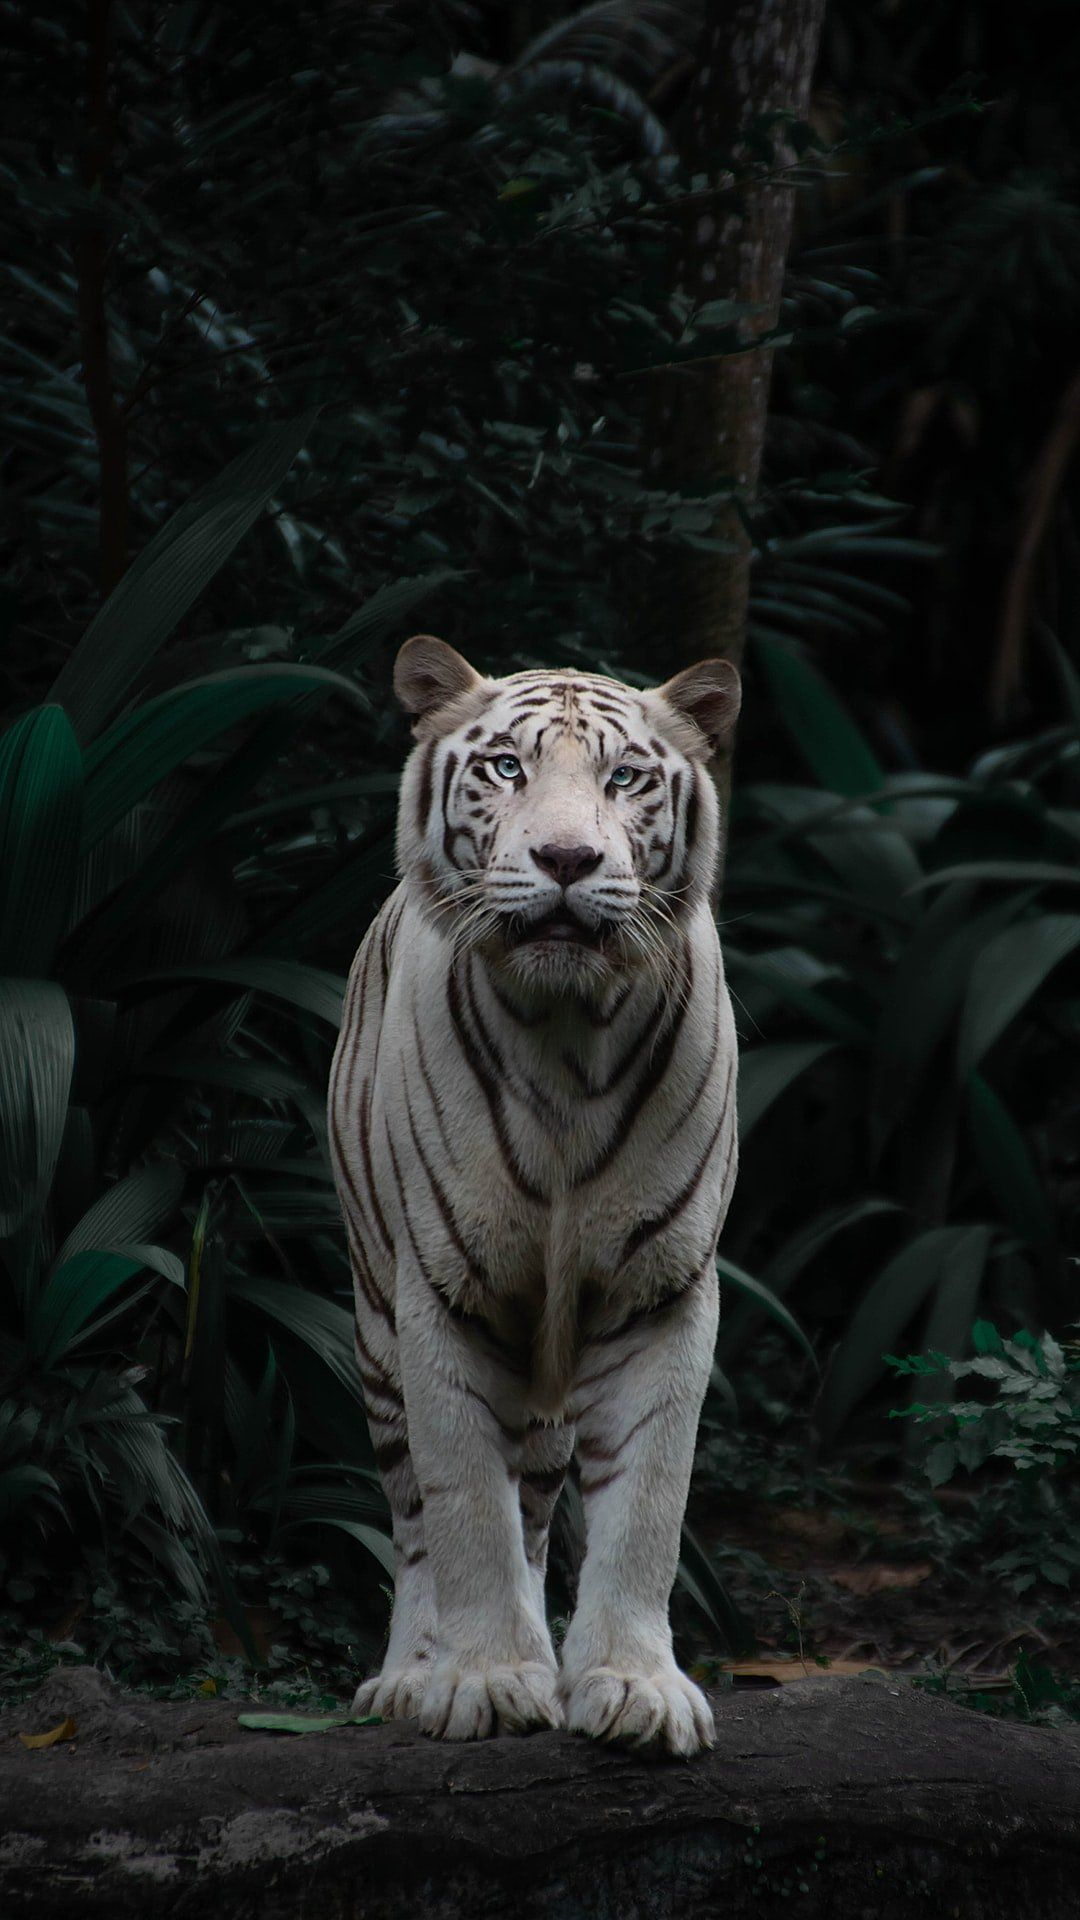 /what-are-the-good-the-bad-and-the-ugly-startup-lessons-from-netflixs-movie-the-white-tiger-xa7m3376 feature image